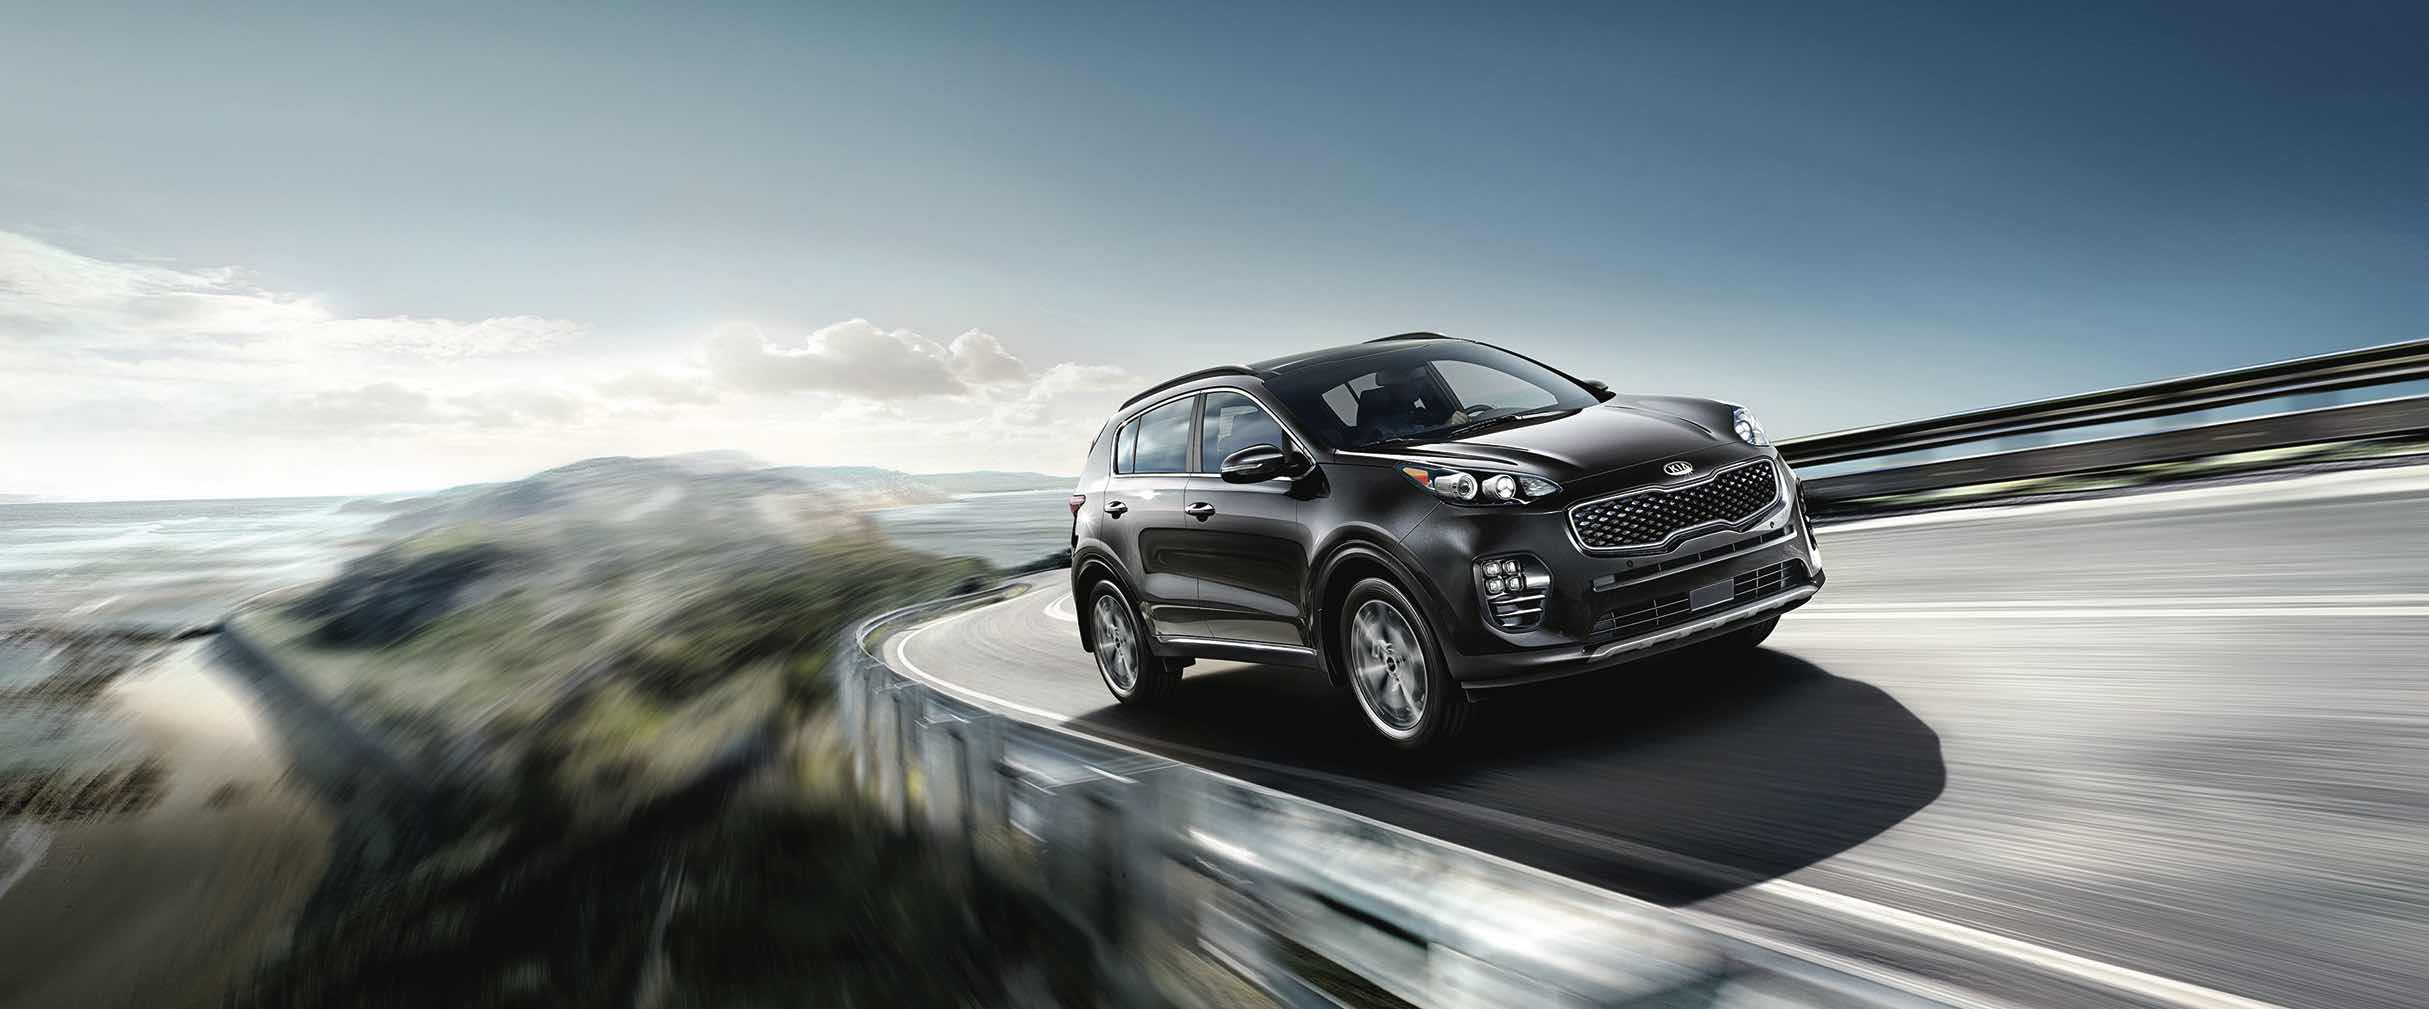 2019 Kia Sportage driving on forest road